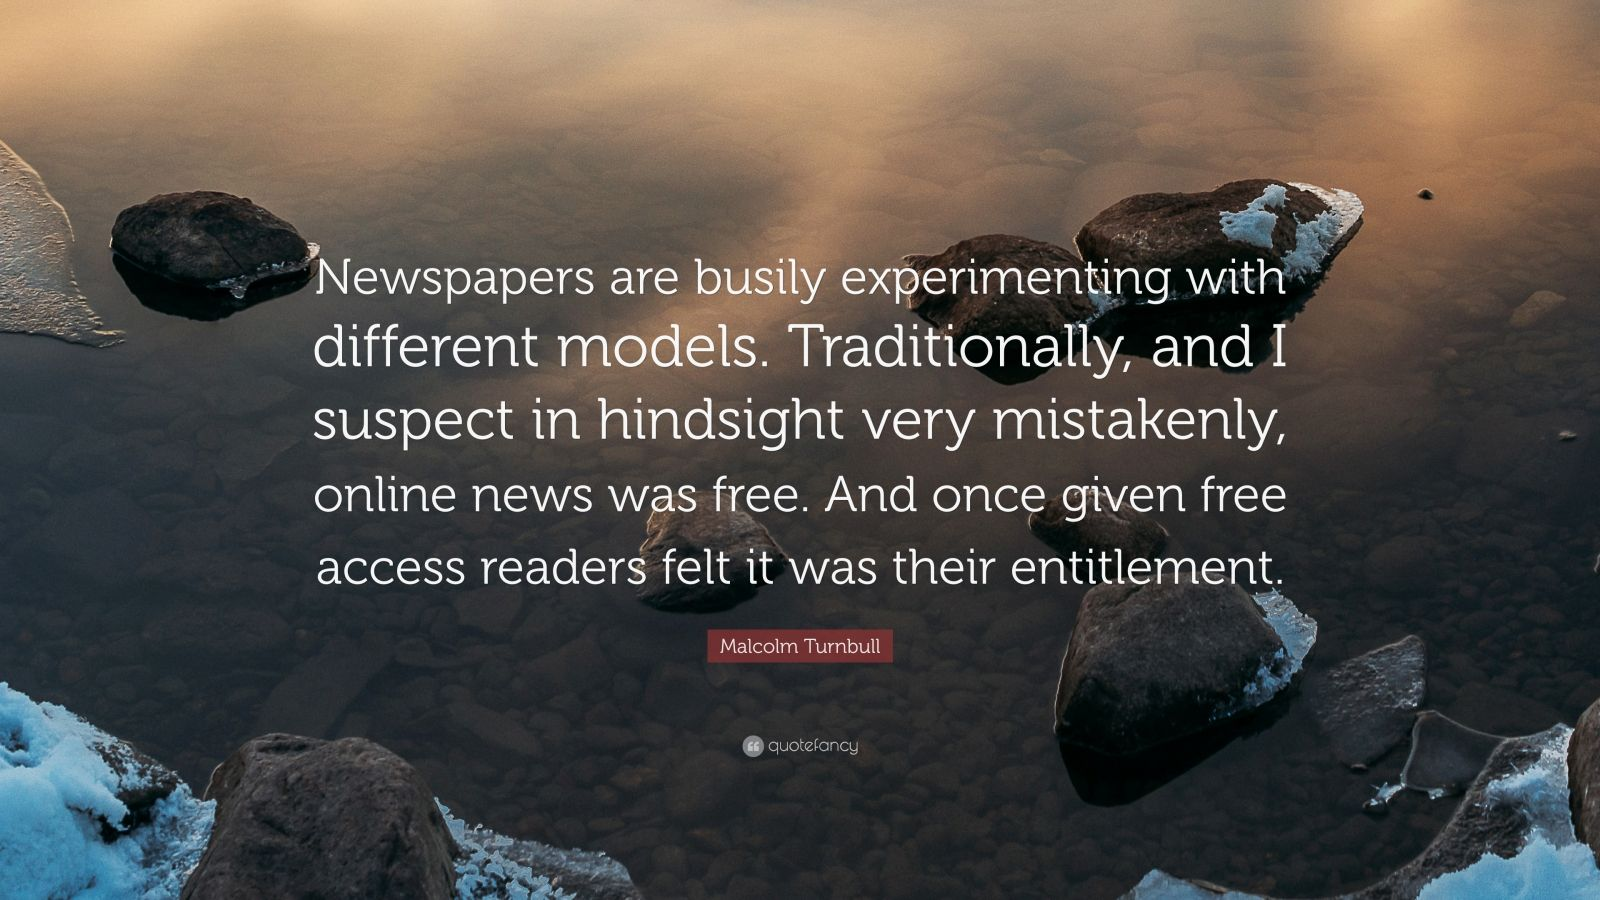 """Malcolm Turnbull Quote: """"Newspapers are busily experimenting with different models. Traditionally, and I suspect in hindsight very mistakenly, online news was free. And once given free access readers felt it was their entitlement."""""""